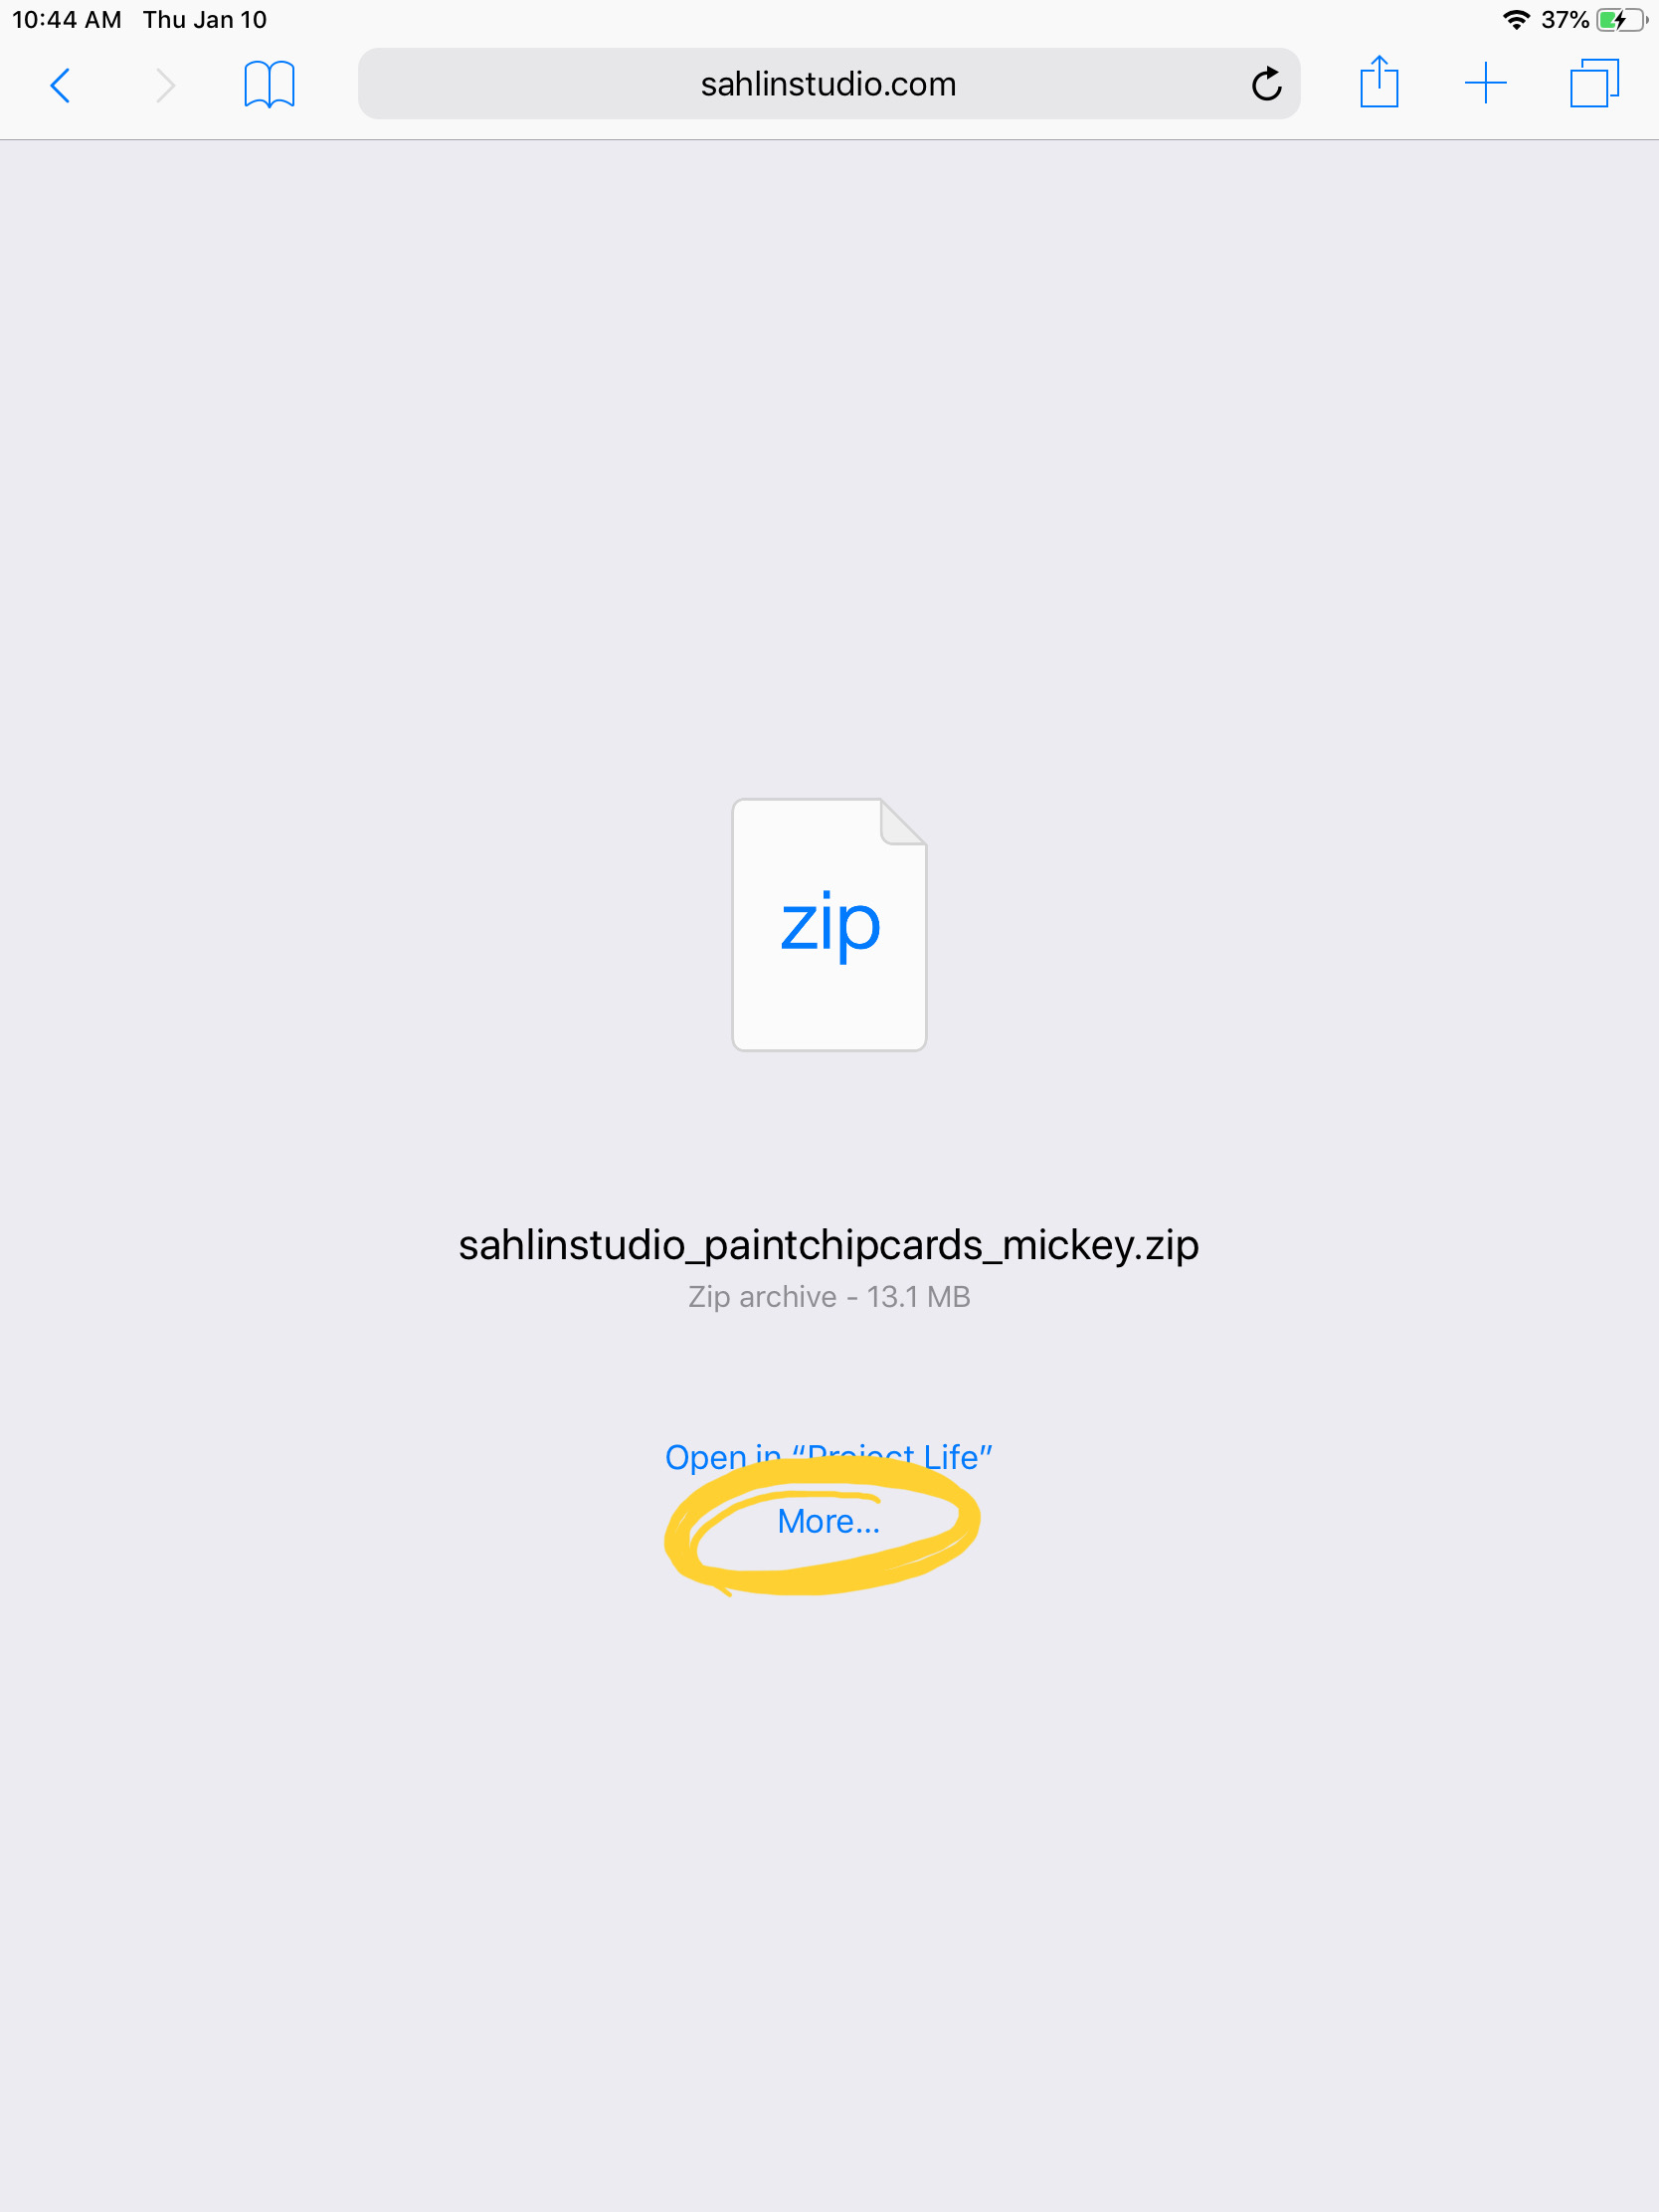 Download, Unzip, and Scrap with Apps!